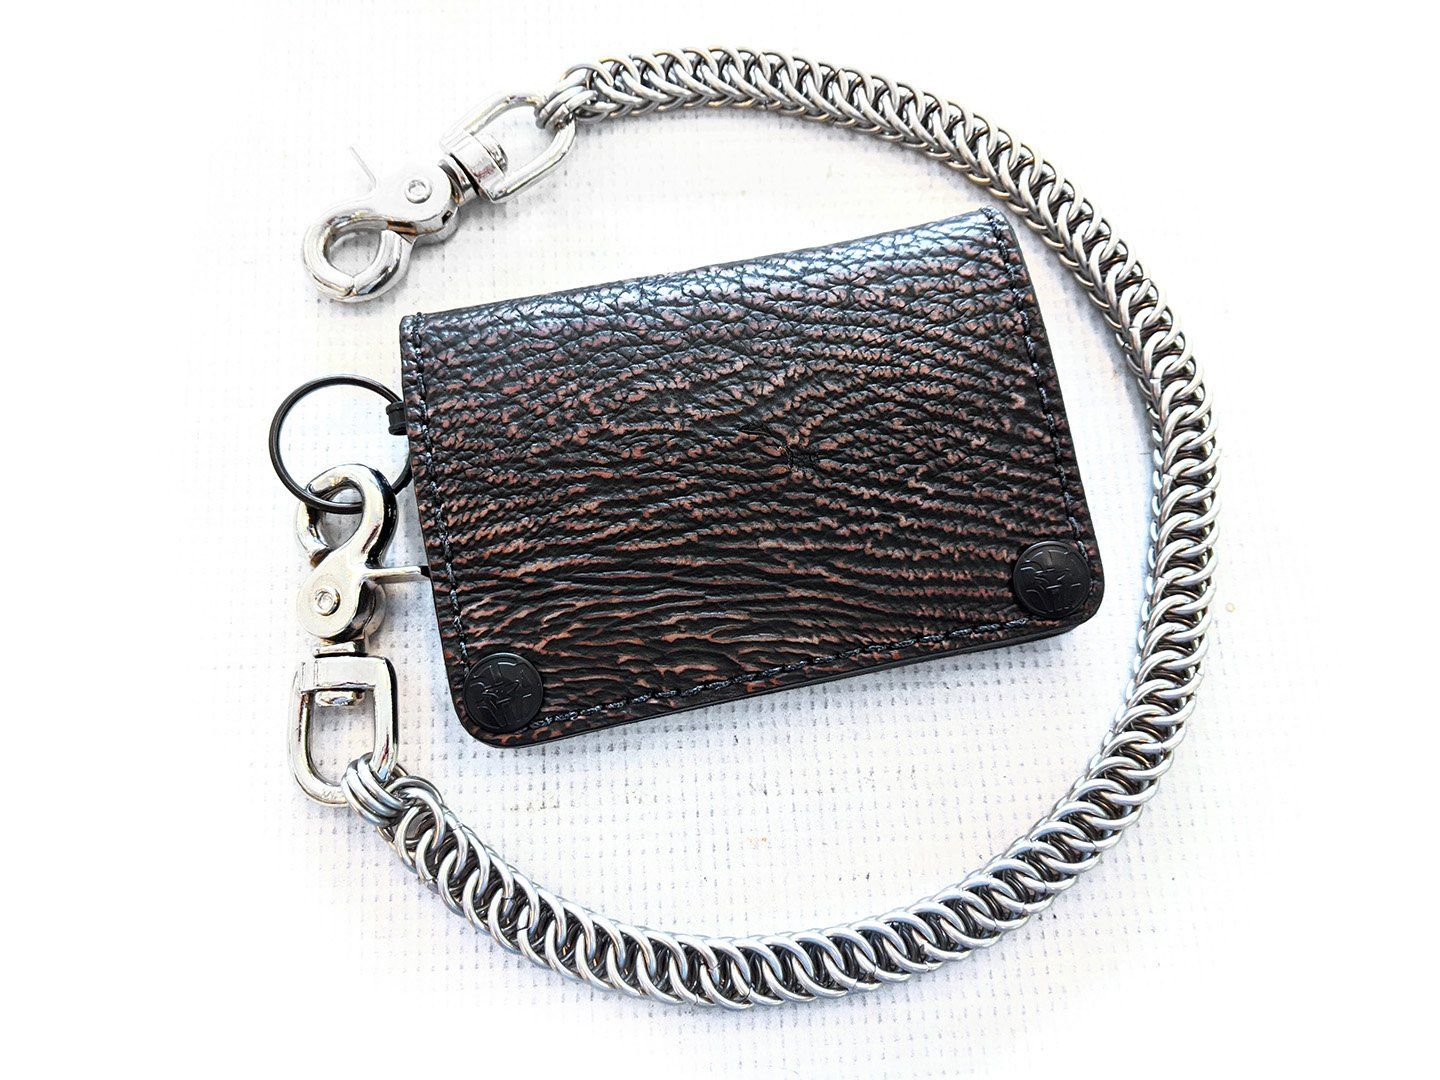 Mini Long Leather Chain Wallet - Dark Brown Shark